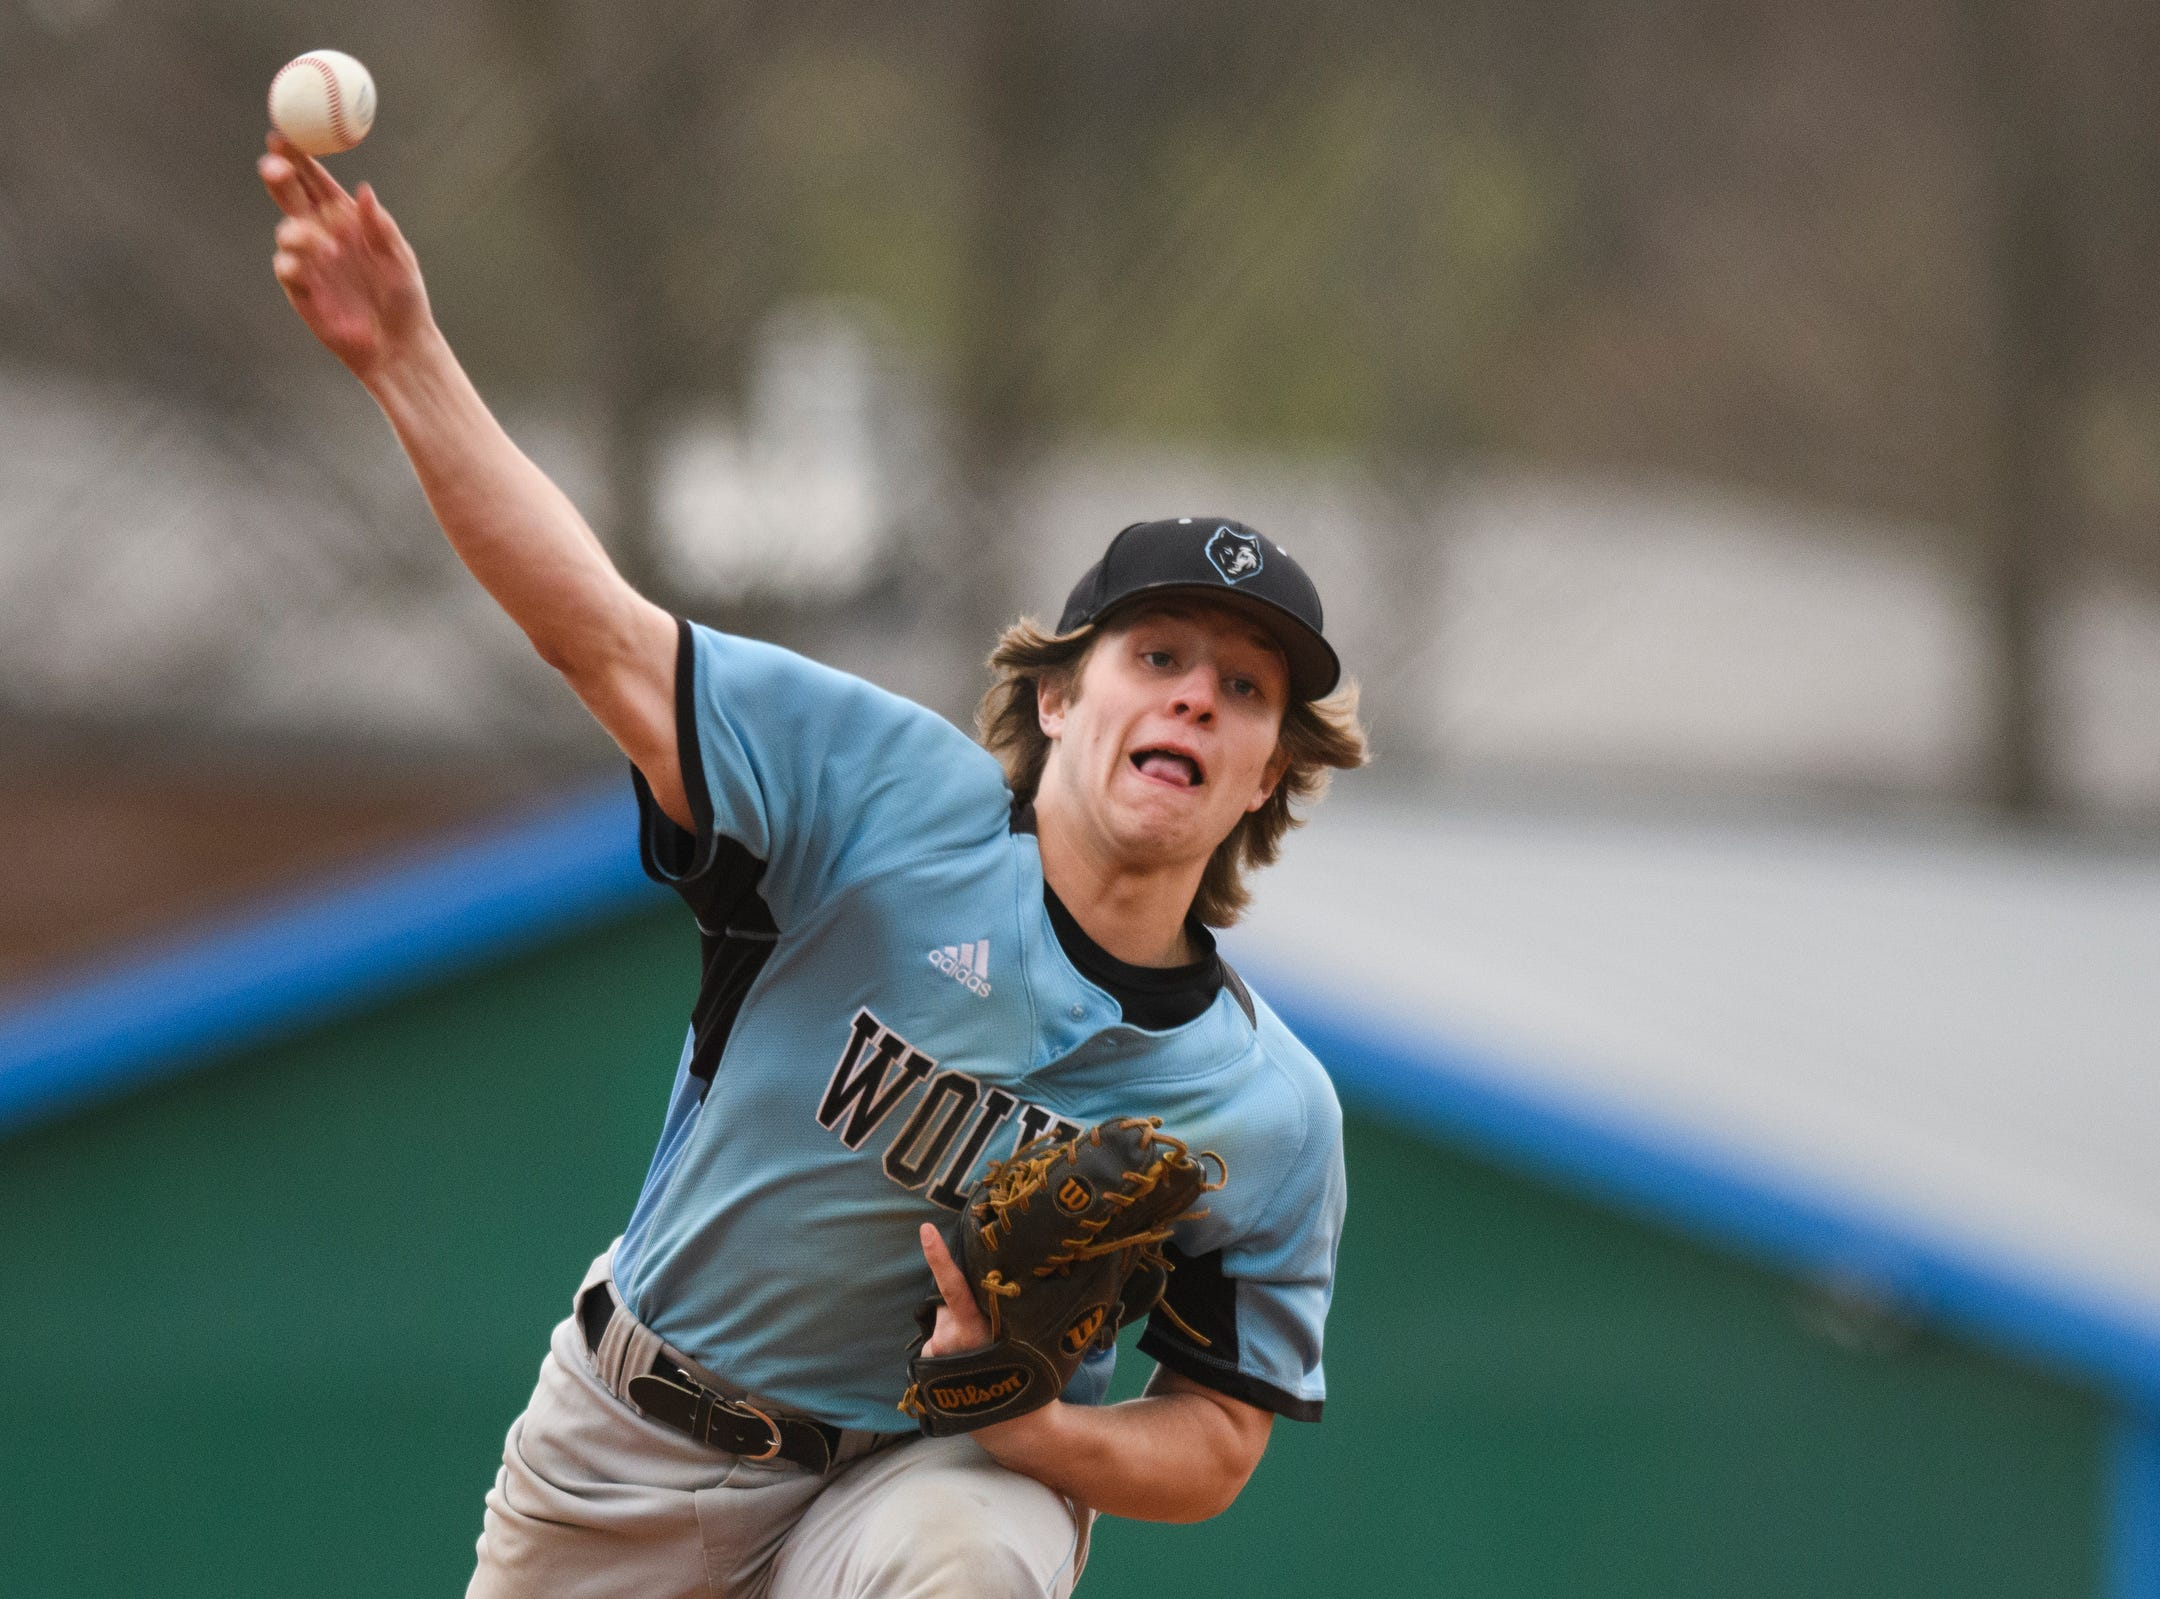 South Burlington pitcher Seamus McGrath (9) delivers a pitch during the boys baseball game between the South Burlington Wolves and the Colchester Lakers at Colchester high school on Thursday afternoon April 18, 2019 in Colchester, Vermont.